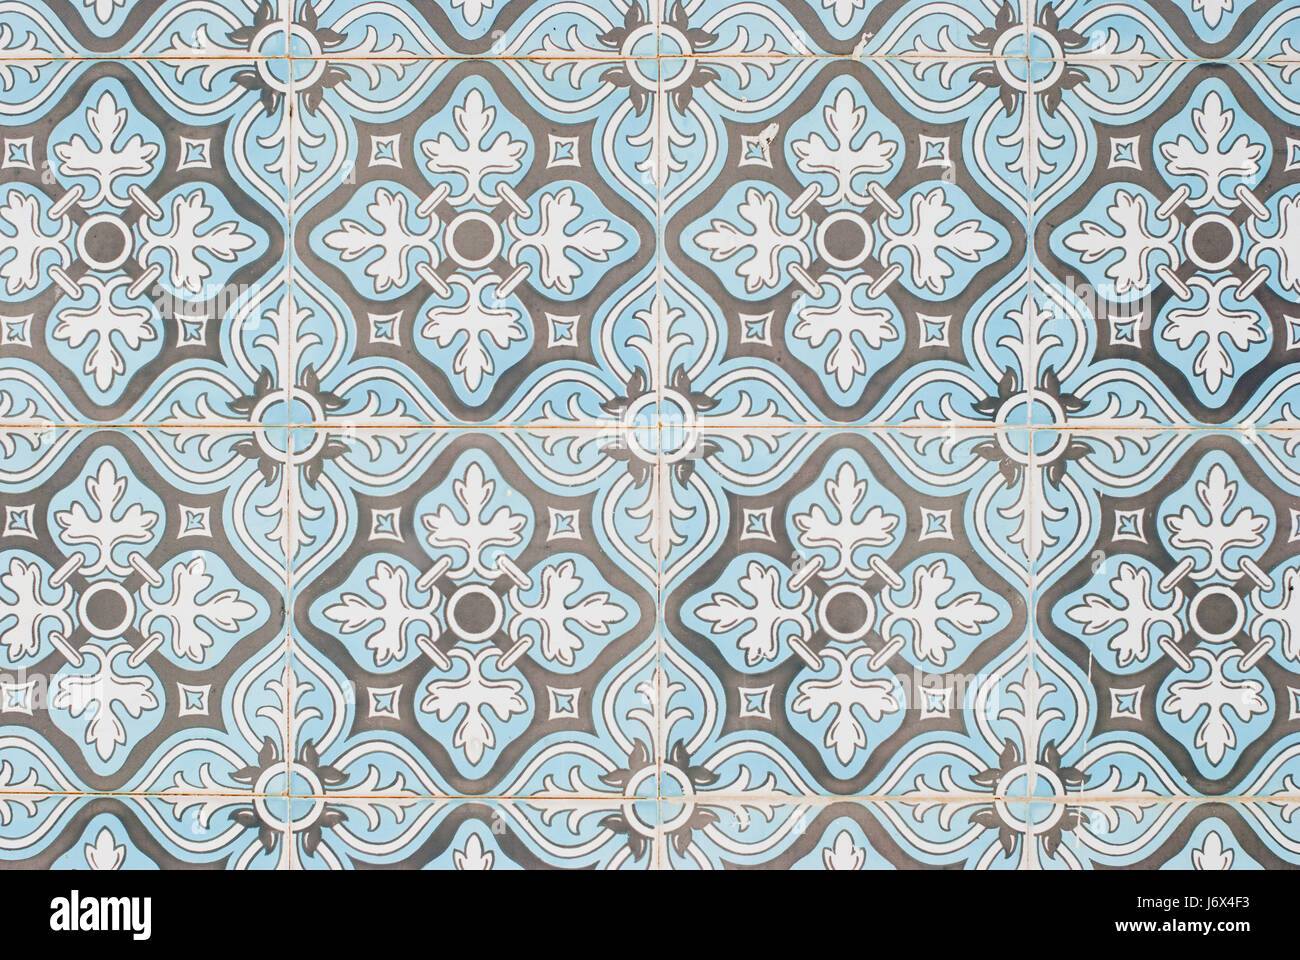 arabesque decoration stock photos arabesque decoration